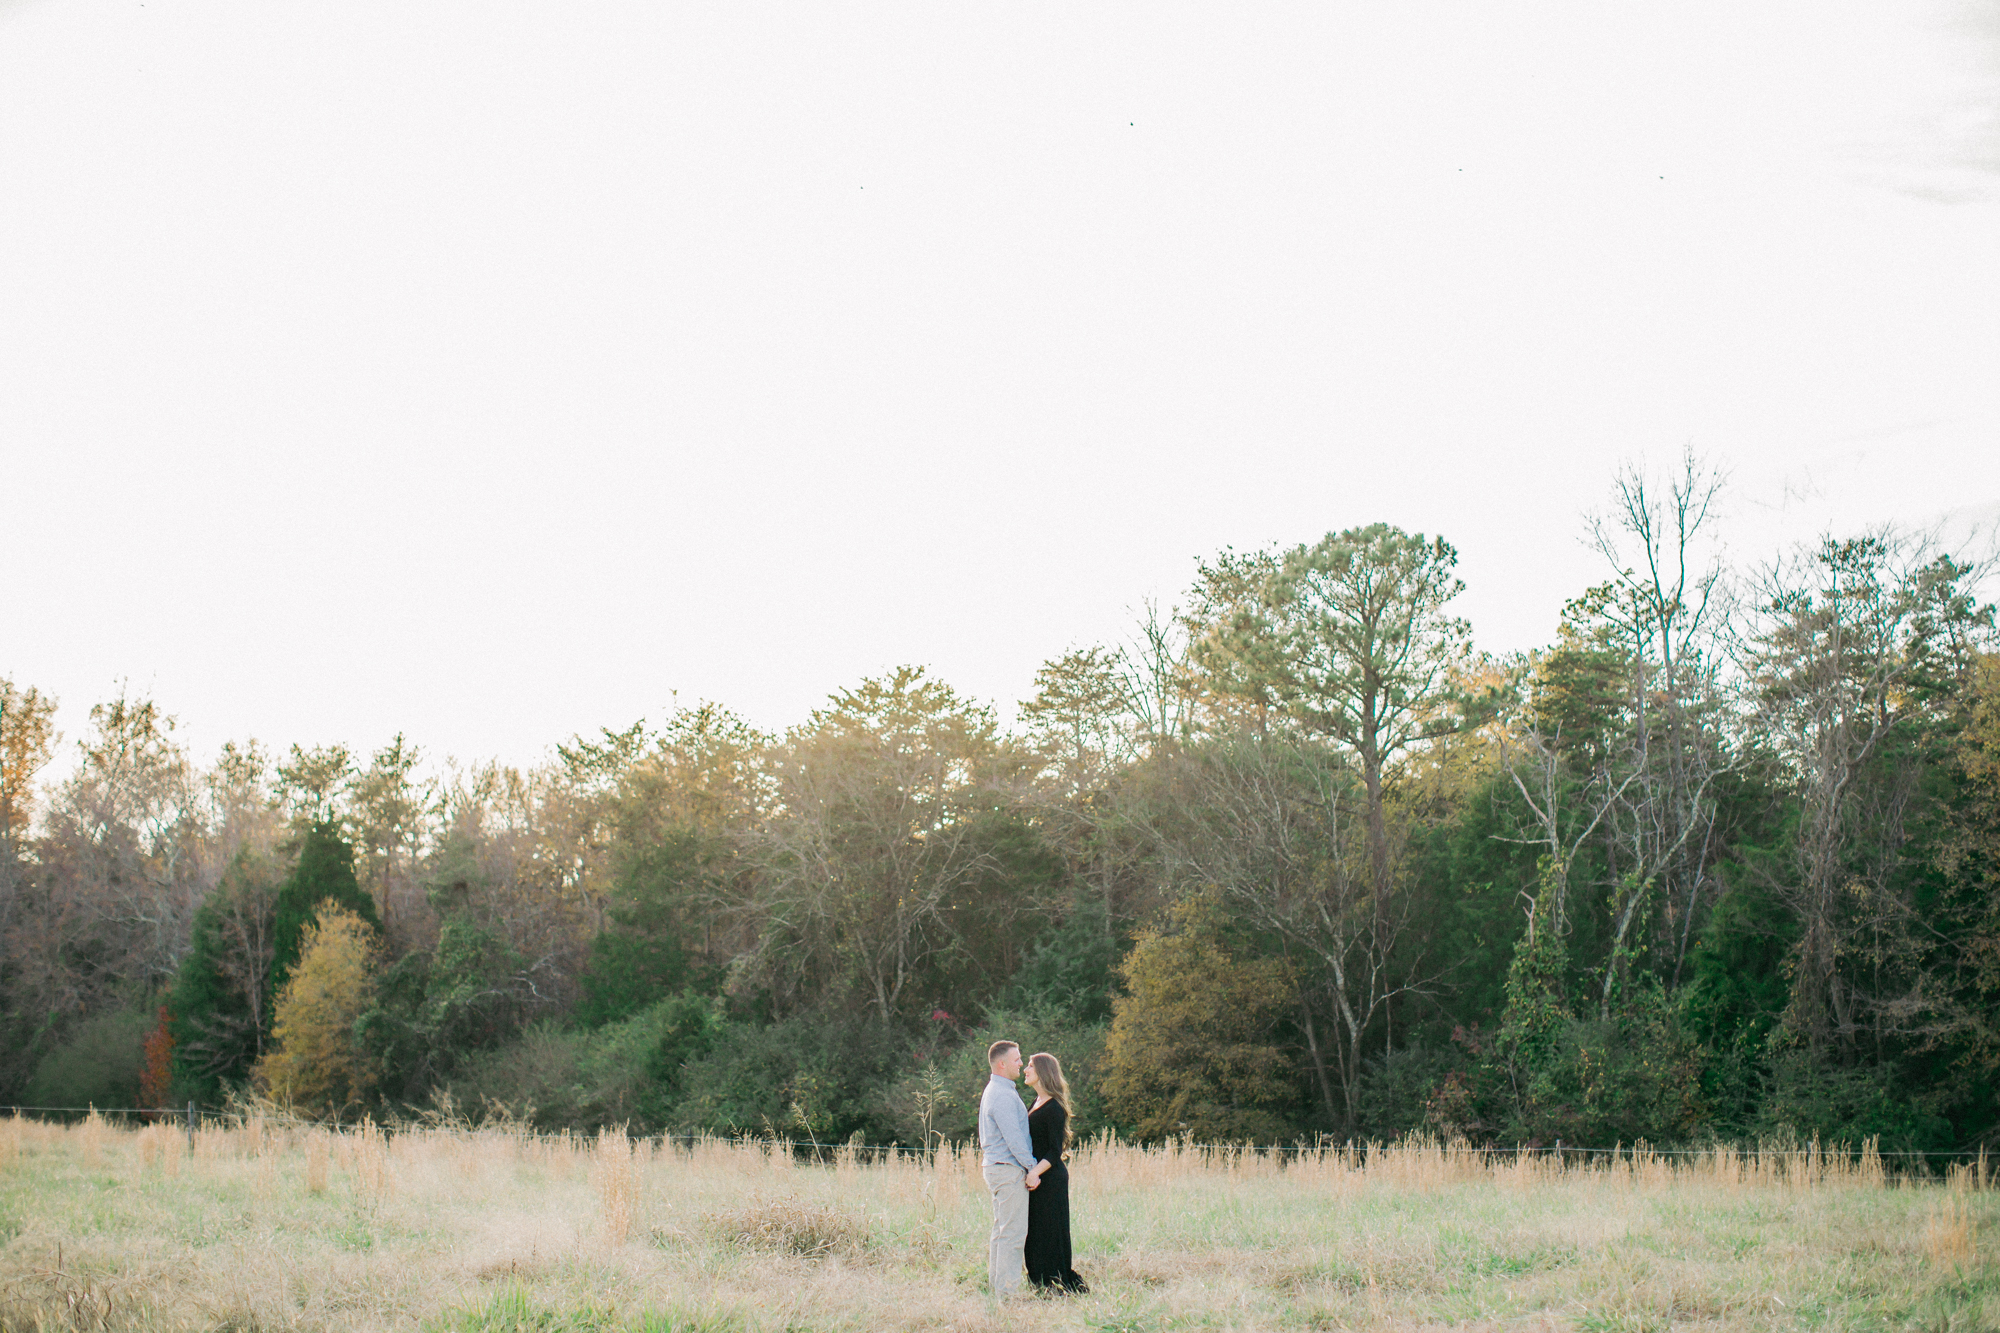 engagement session on open field